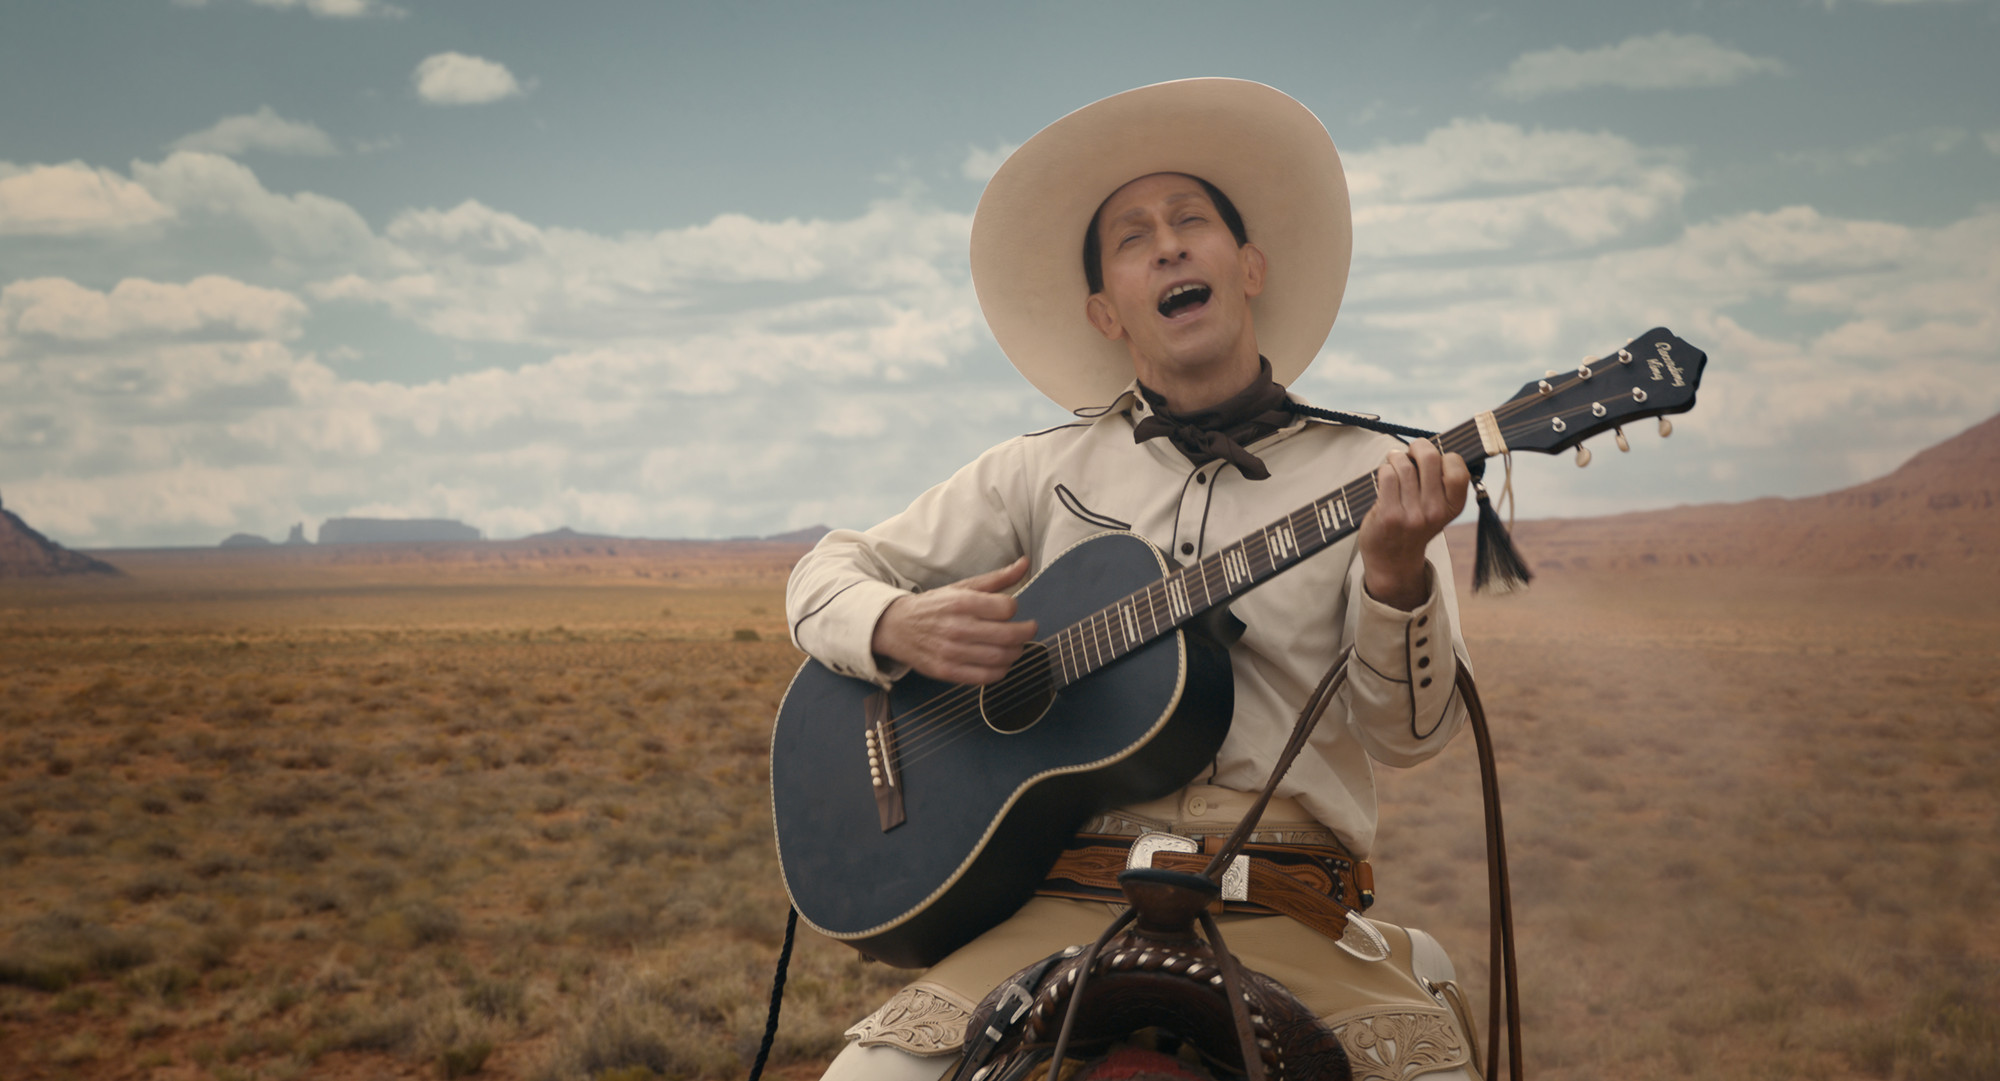 The Ballad of Buster Scruggs. 2018. USA. Directed by Joel and Ethan Coen. Courtesy of Netflix